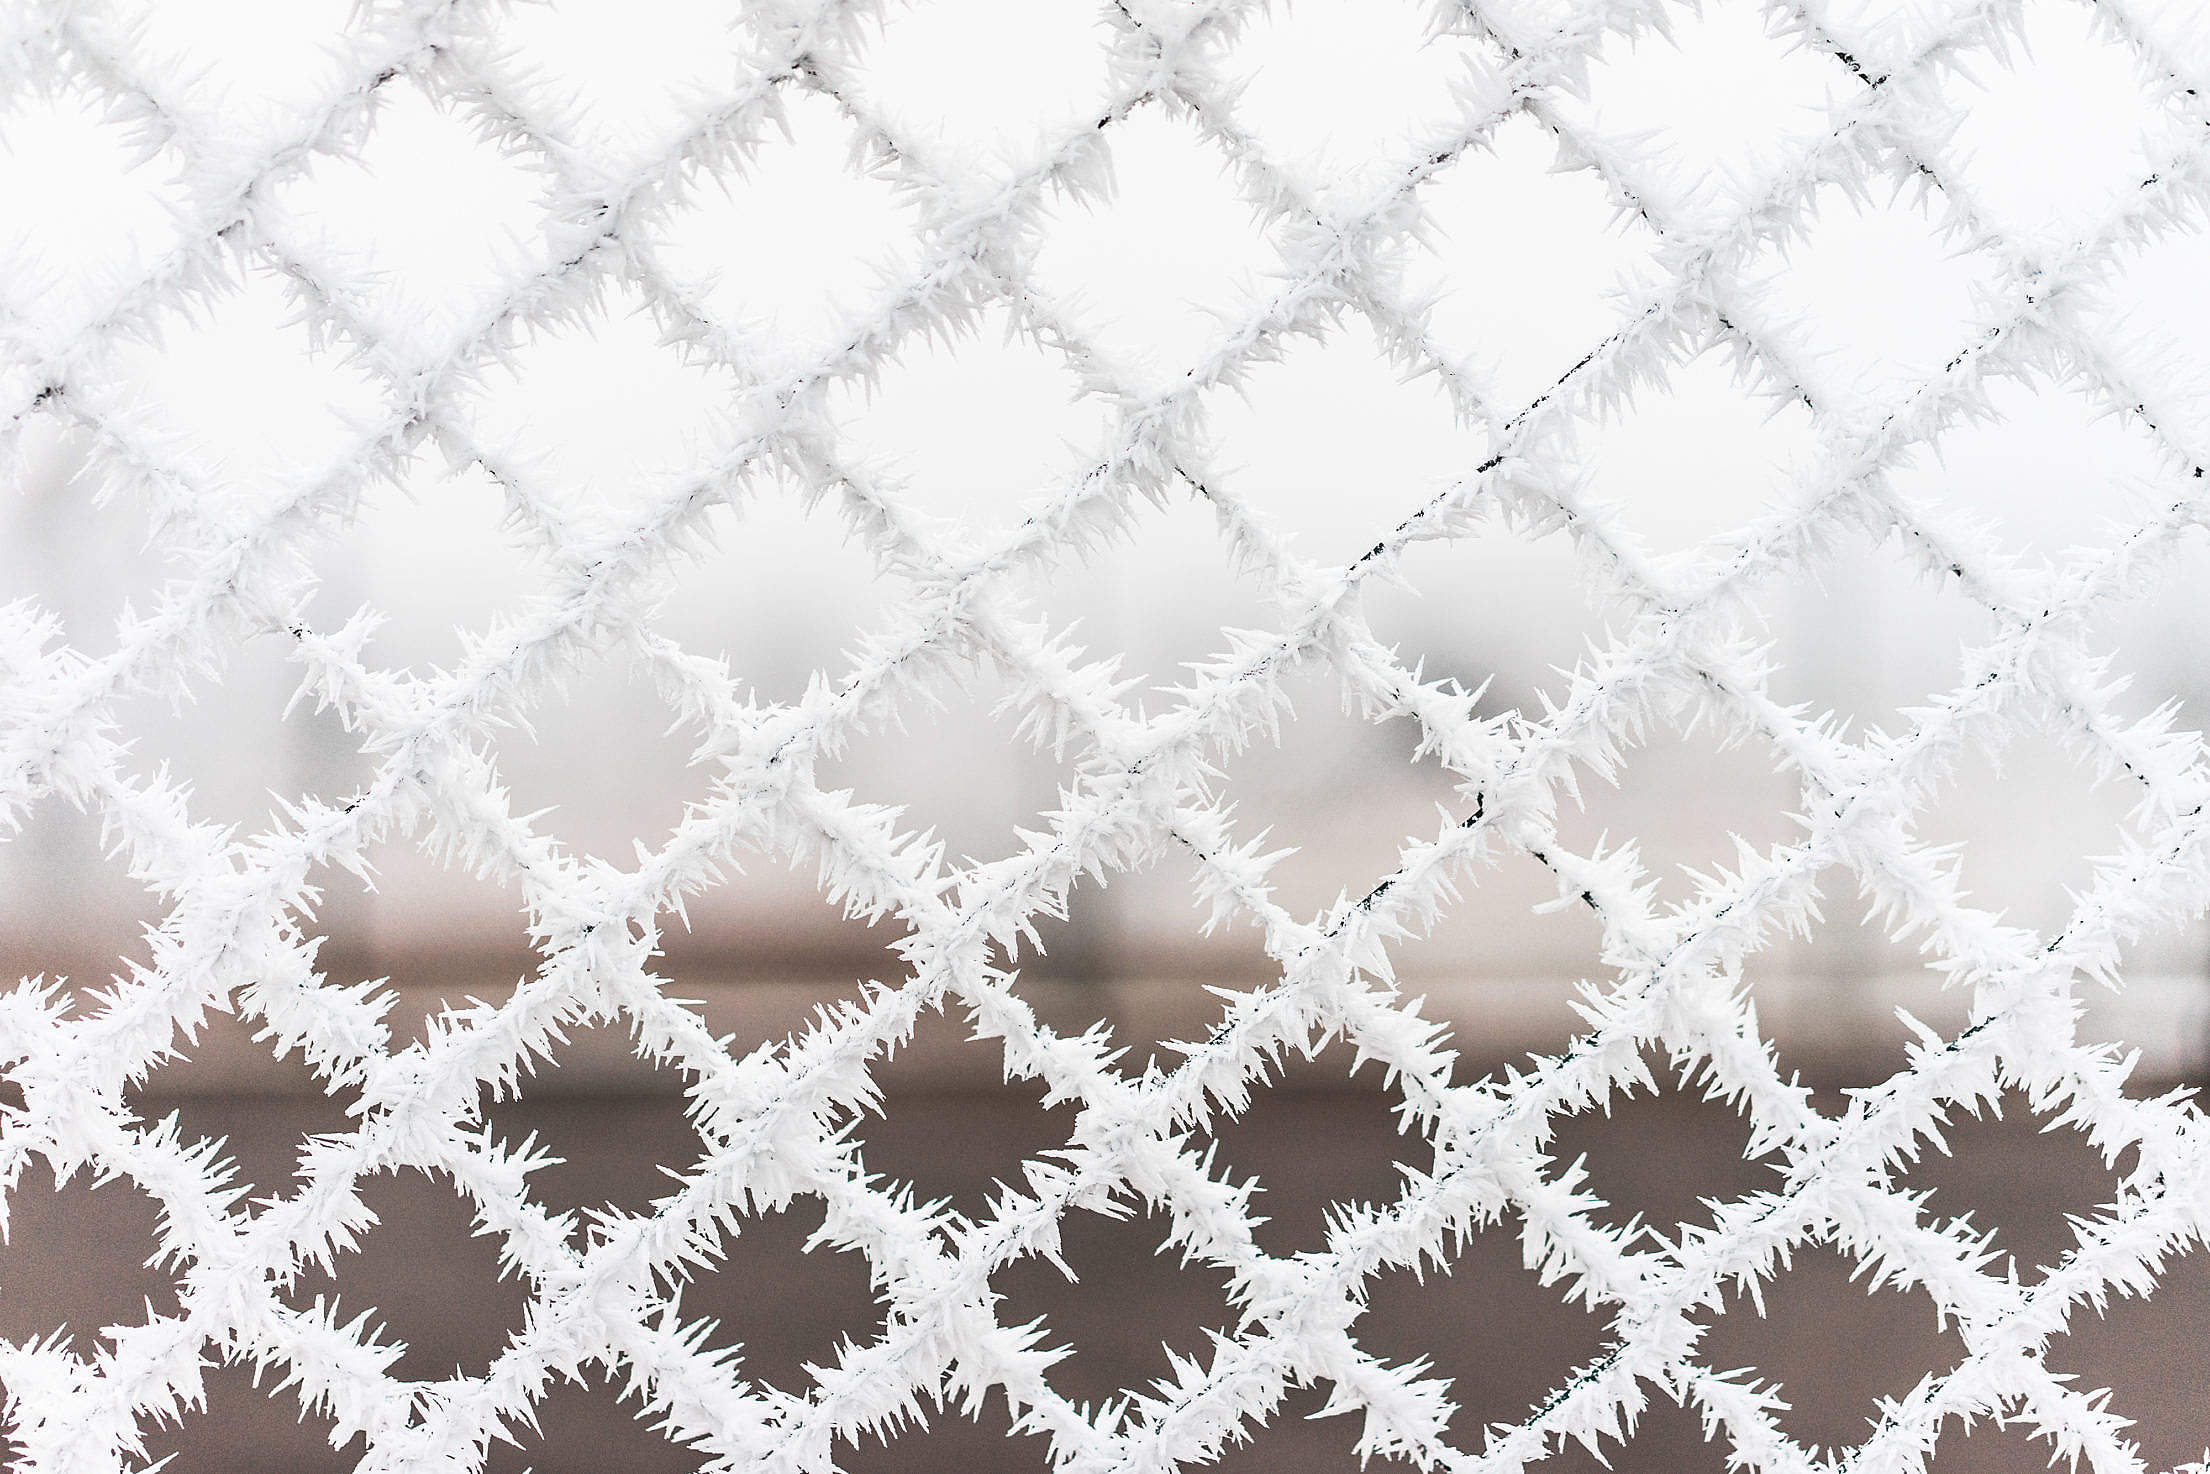 Bitter Cold Hoarfrost vs. Steel Fence Free Stock Photo